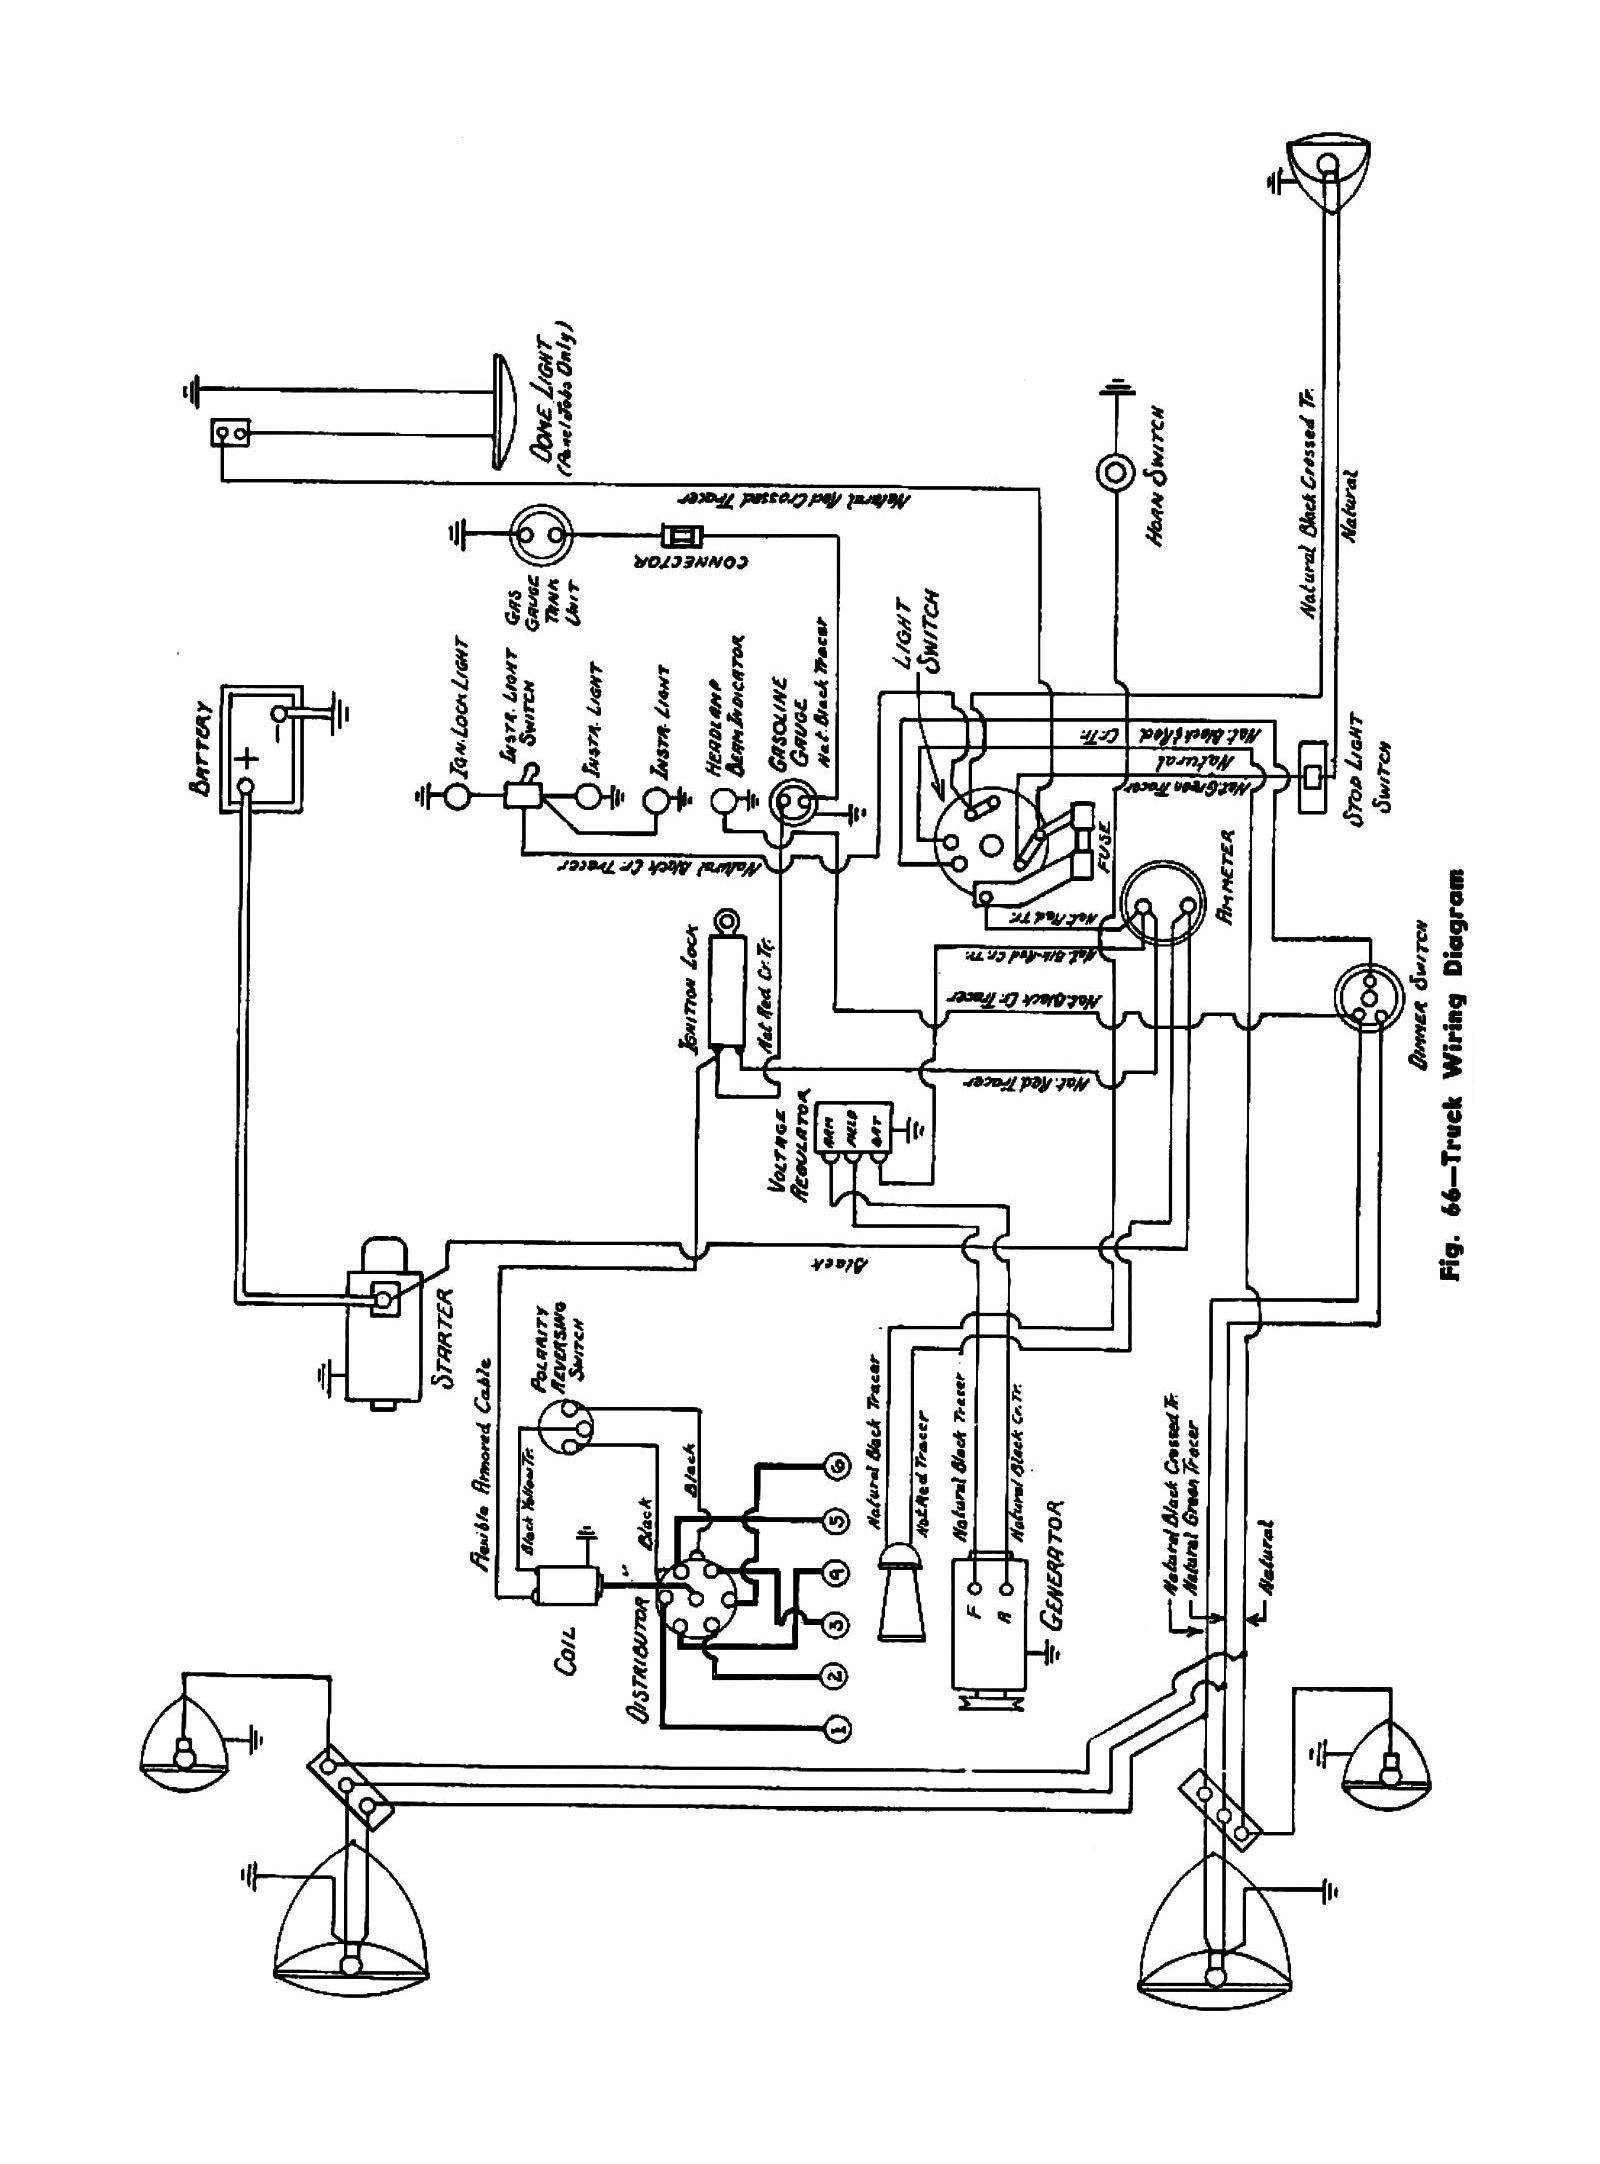 45truck ihc truck wiring diagrams mazda truck wiring diagrams \u2022 free ford truck wiring diagrams free at edmiracle.co